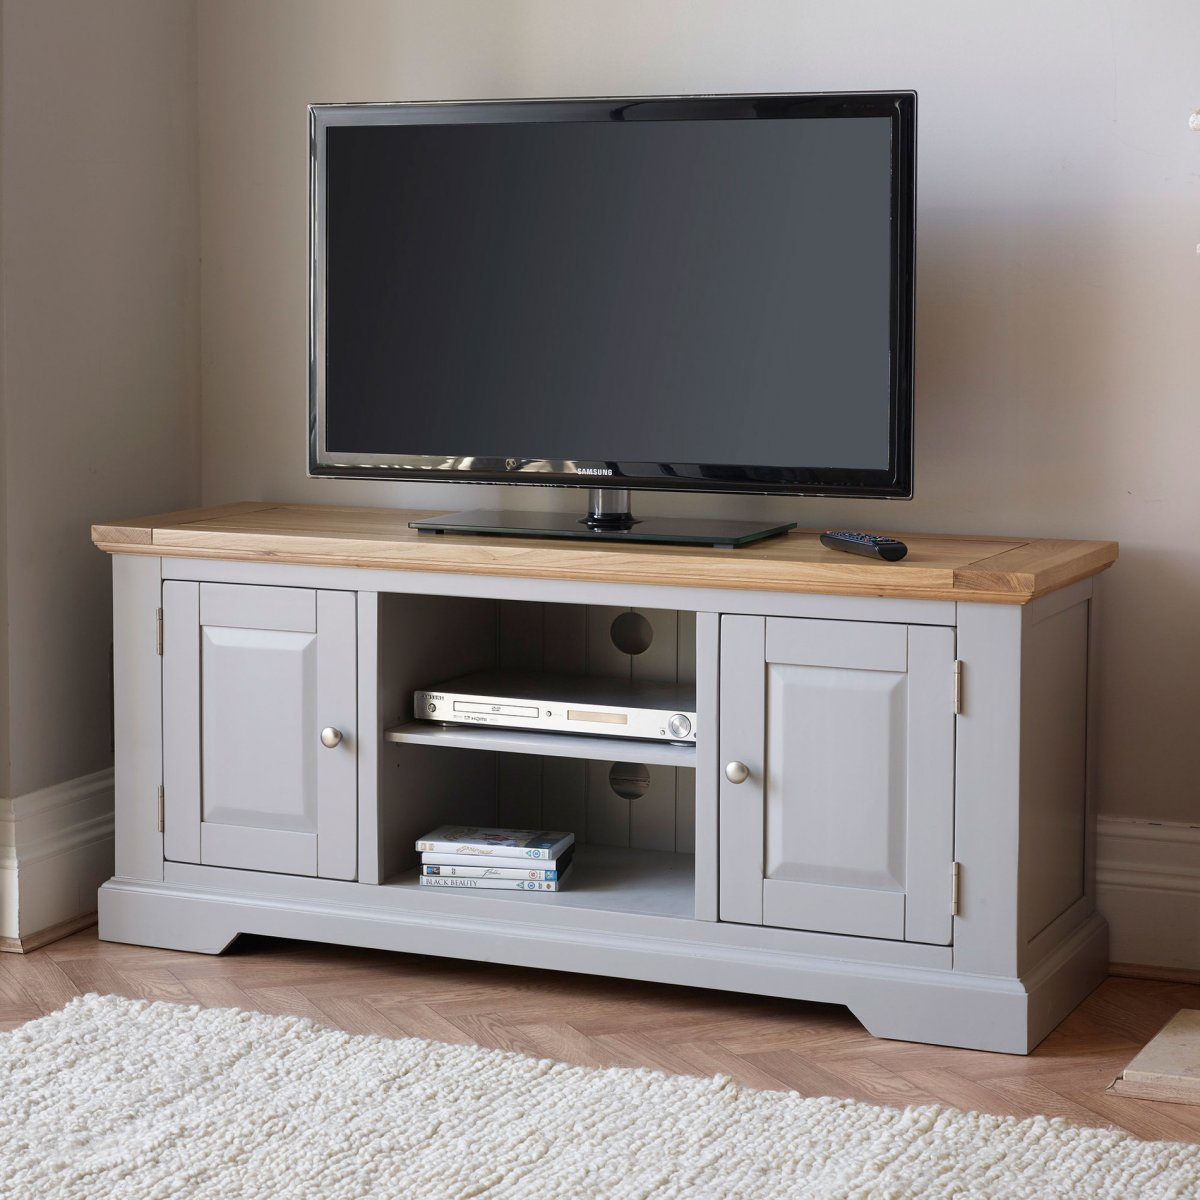 Natural oak and light grey painted TV cabinet.